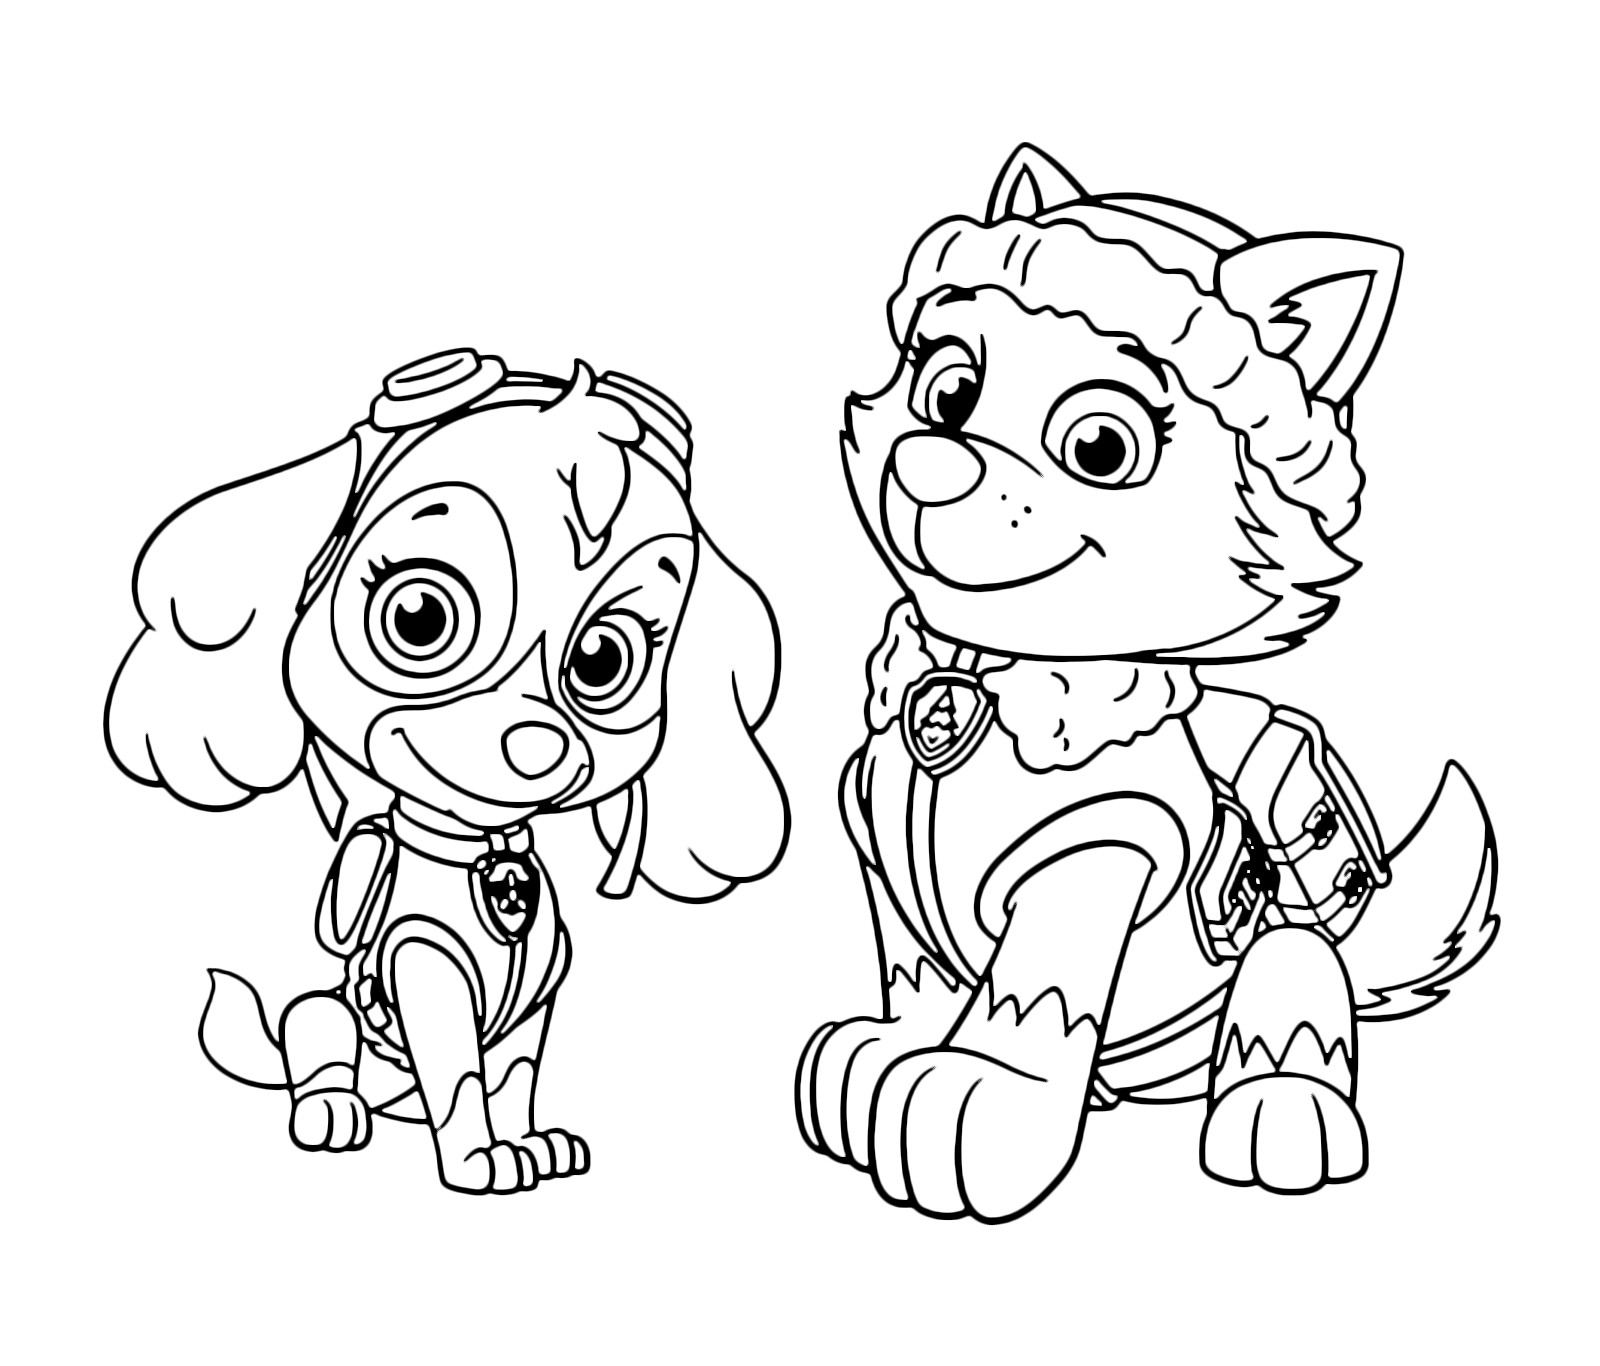 paw patrol pictures to print paw patrol coloring pages printable free coloring sheets pictures to print patrol paw